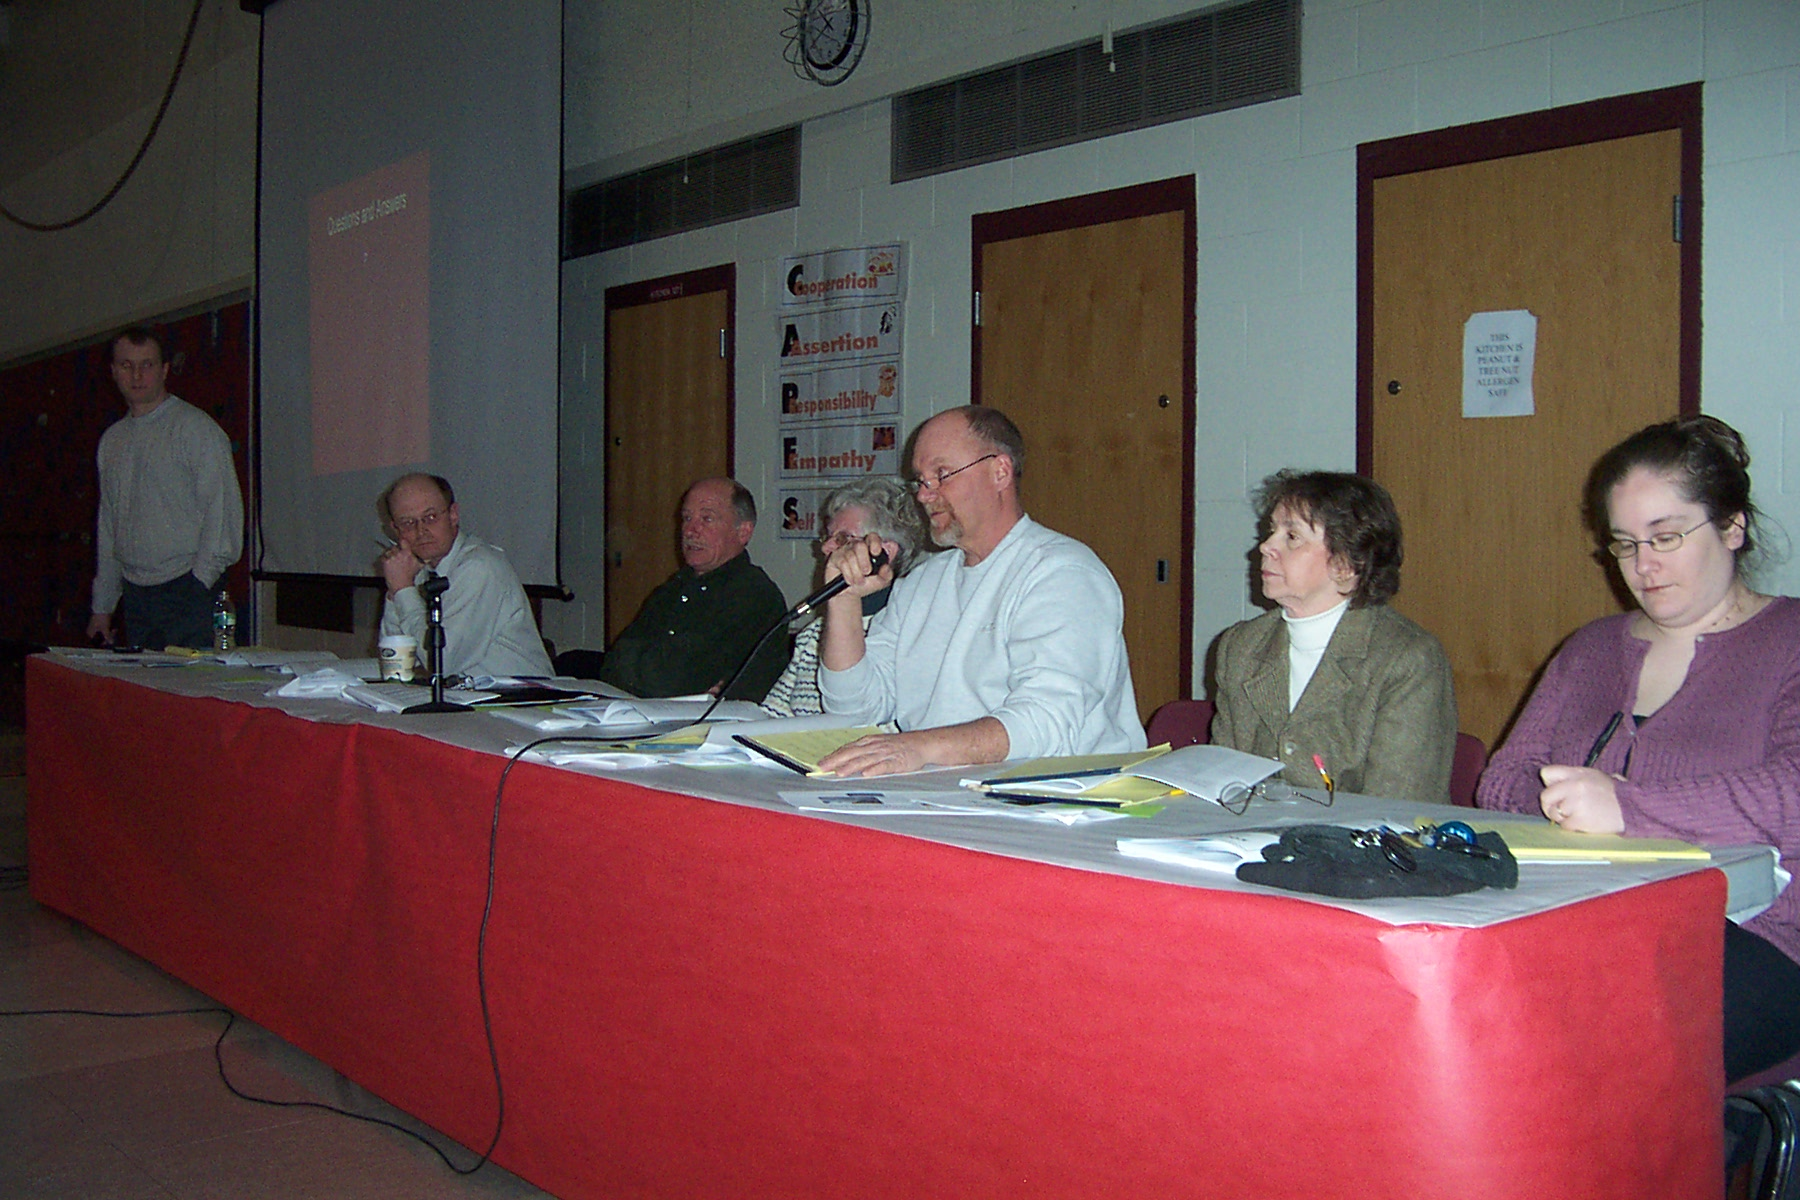 Jeff Blake, Selectboard Member responds to a question as Bill Ormerod, Charlie Swanson & Judy Cleary listen - Donna Meunier and Erin McSweeney on this end of the table - twnmeeting 2008 009